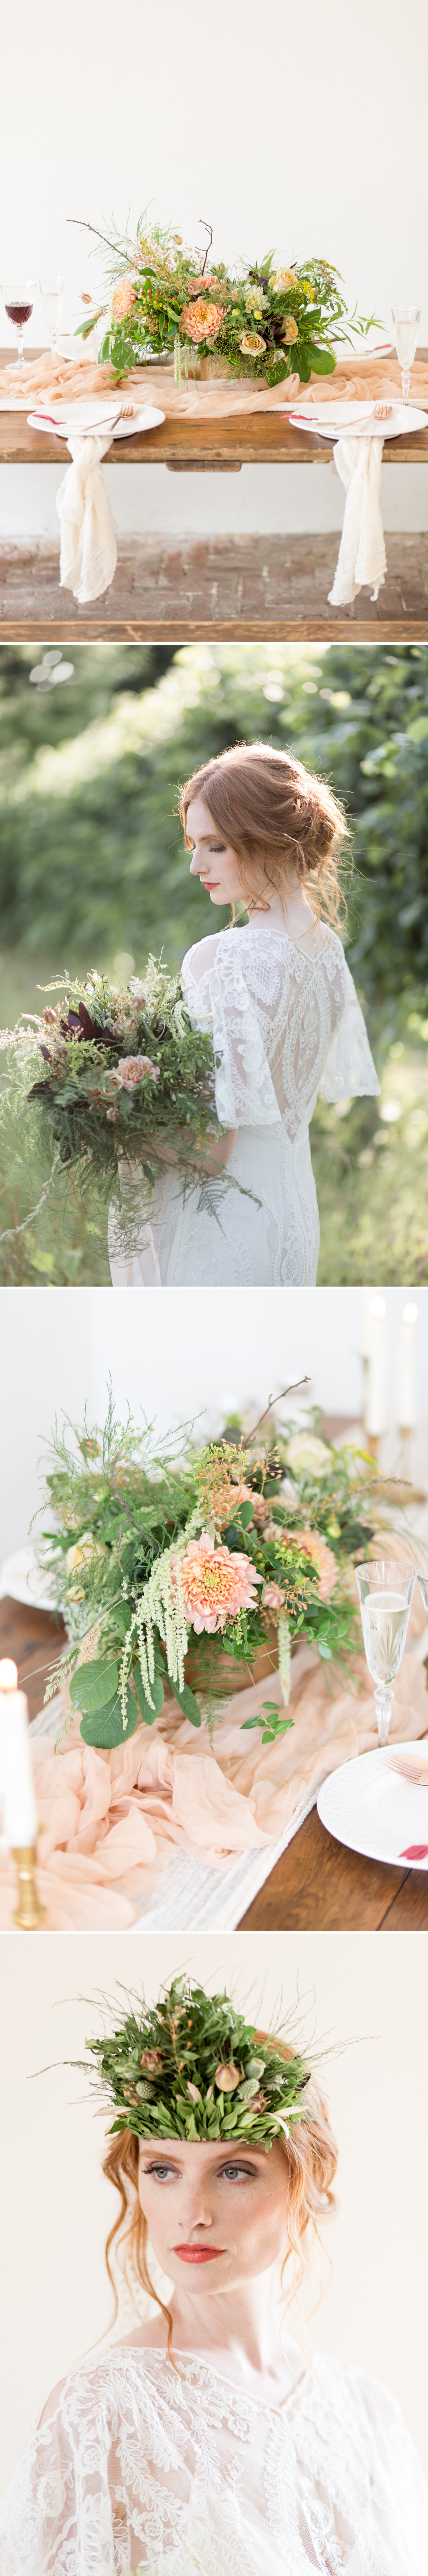 West Sussex Wedding Photographer - images from a Mid-Summer Night's Dream inspired wedding